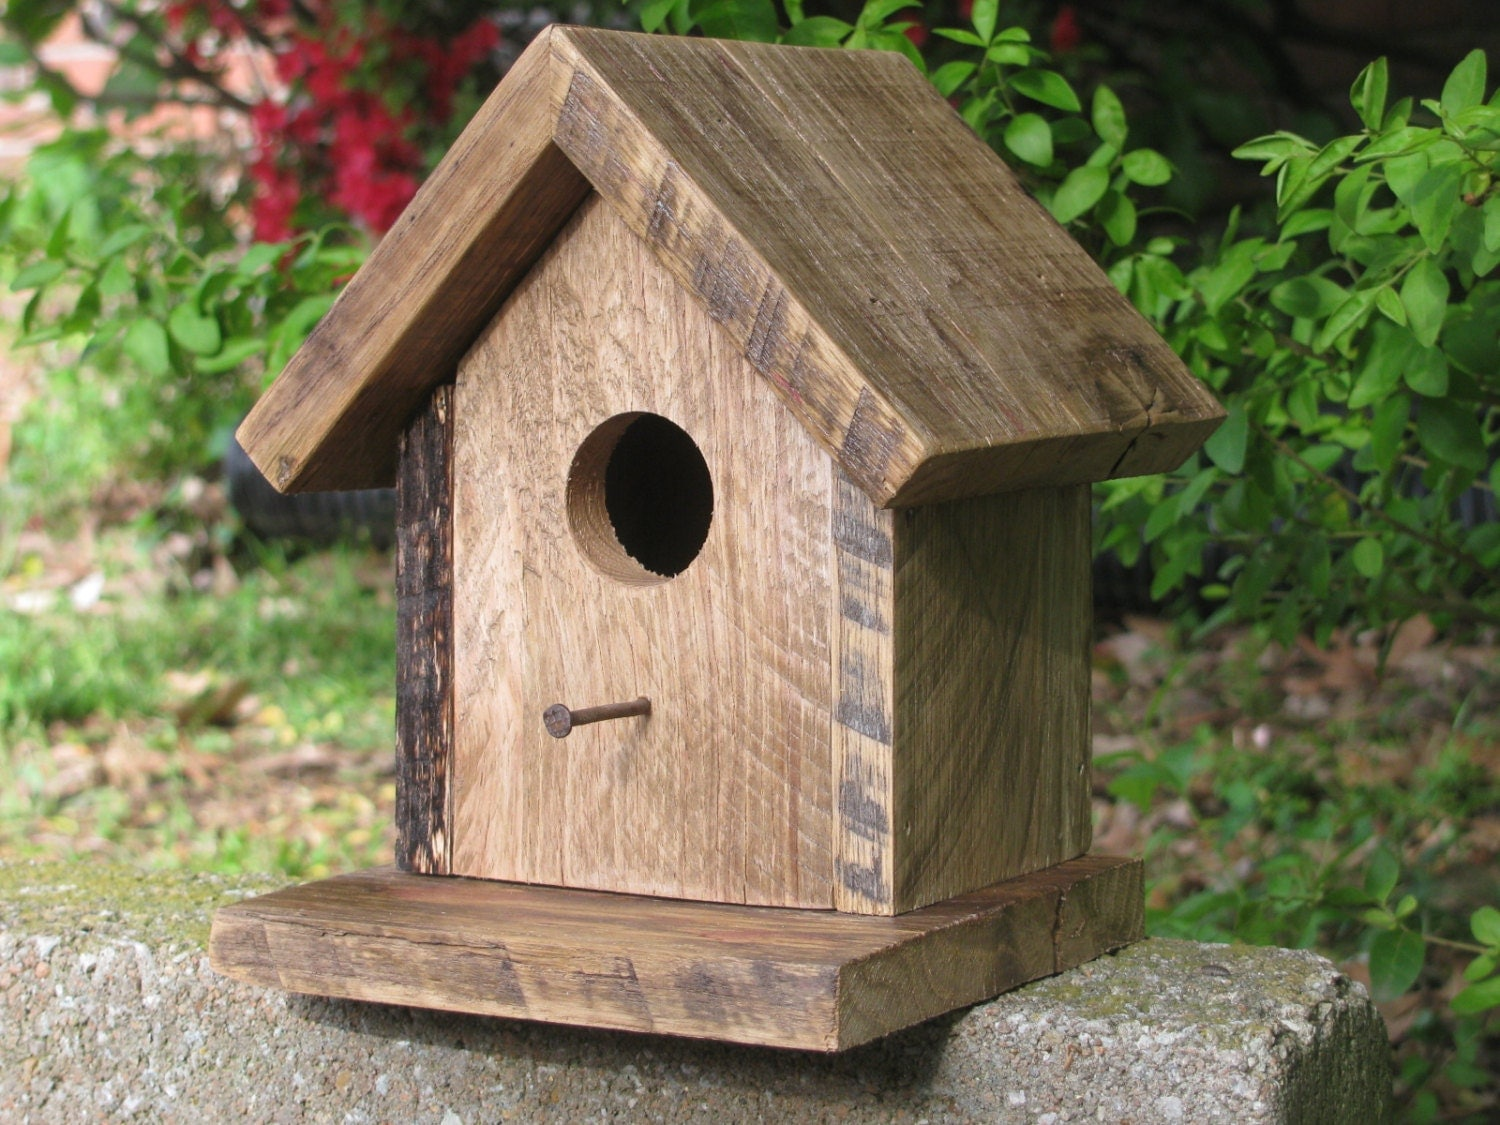 Bird house rustic repurposed wooden by